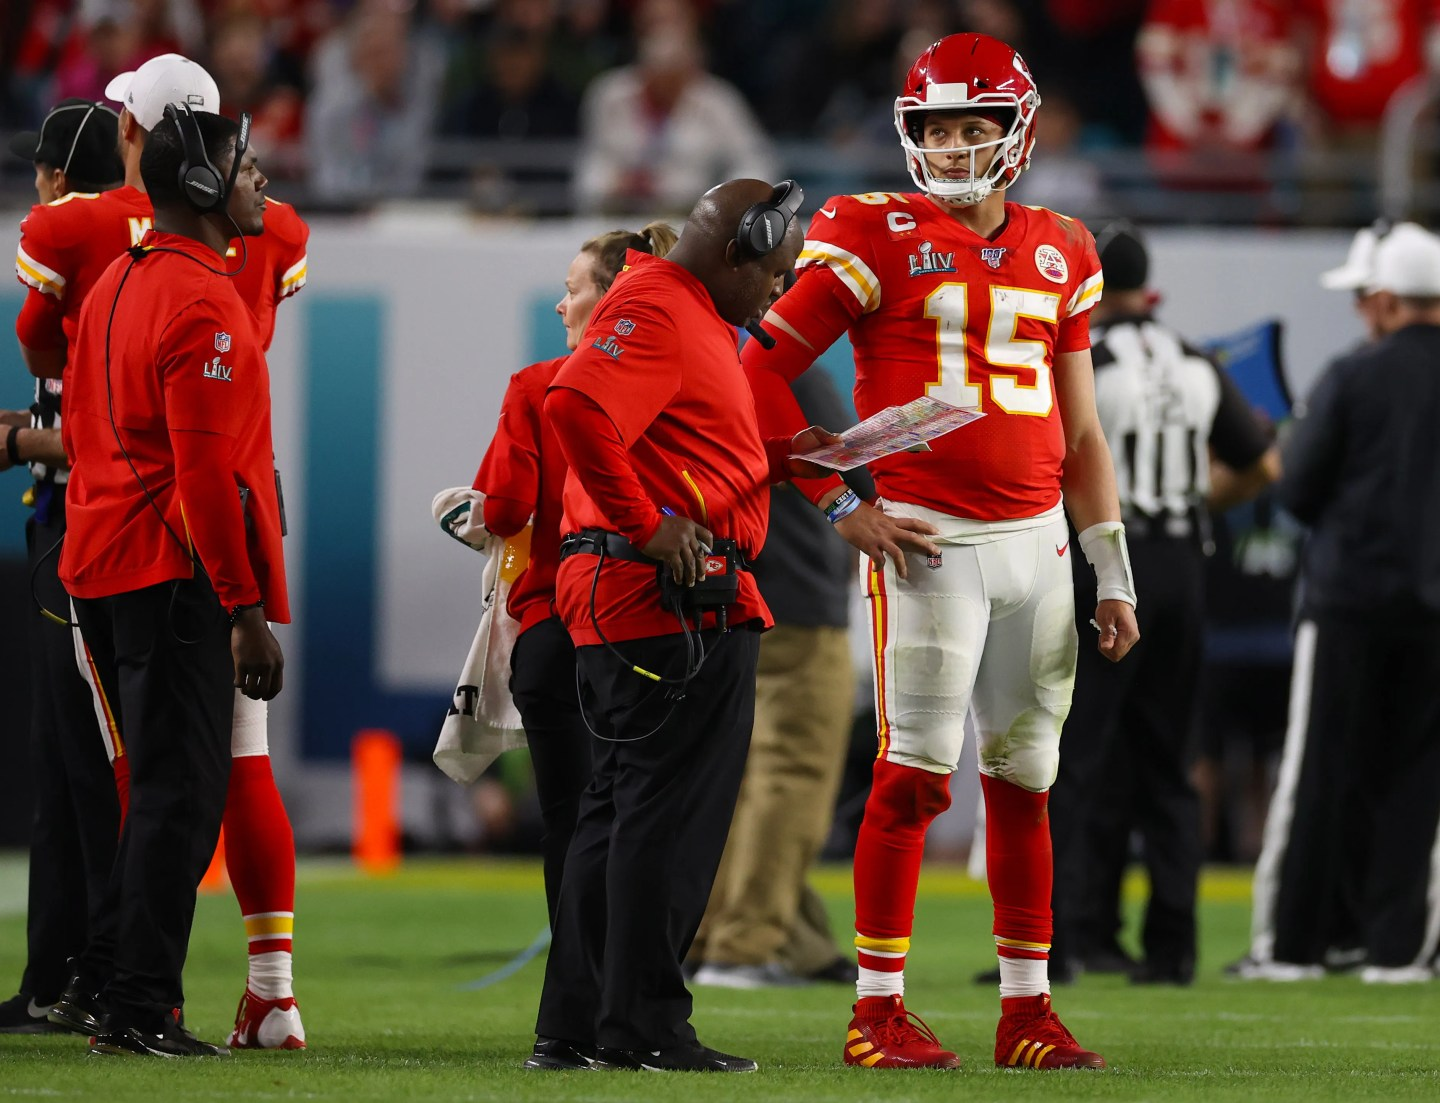 Patrick Mahomes, shown during the Super Bowl in February, credits Eric Bieniemy, left, with helping him to remain calm in critical moments.